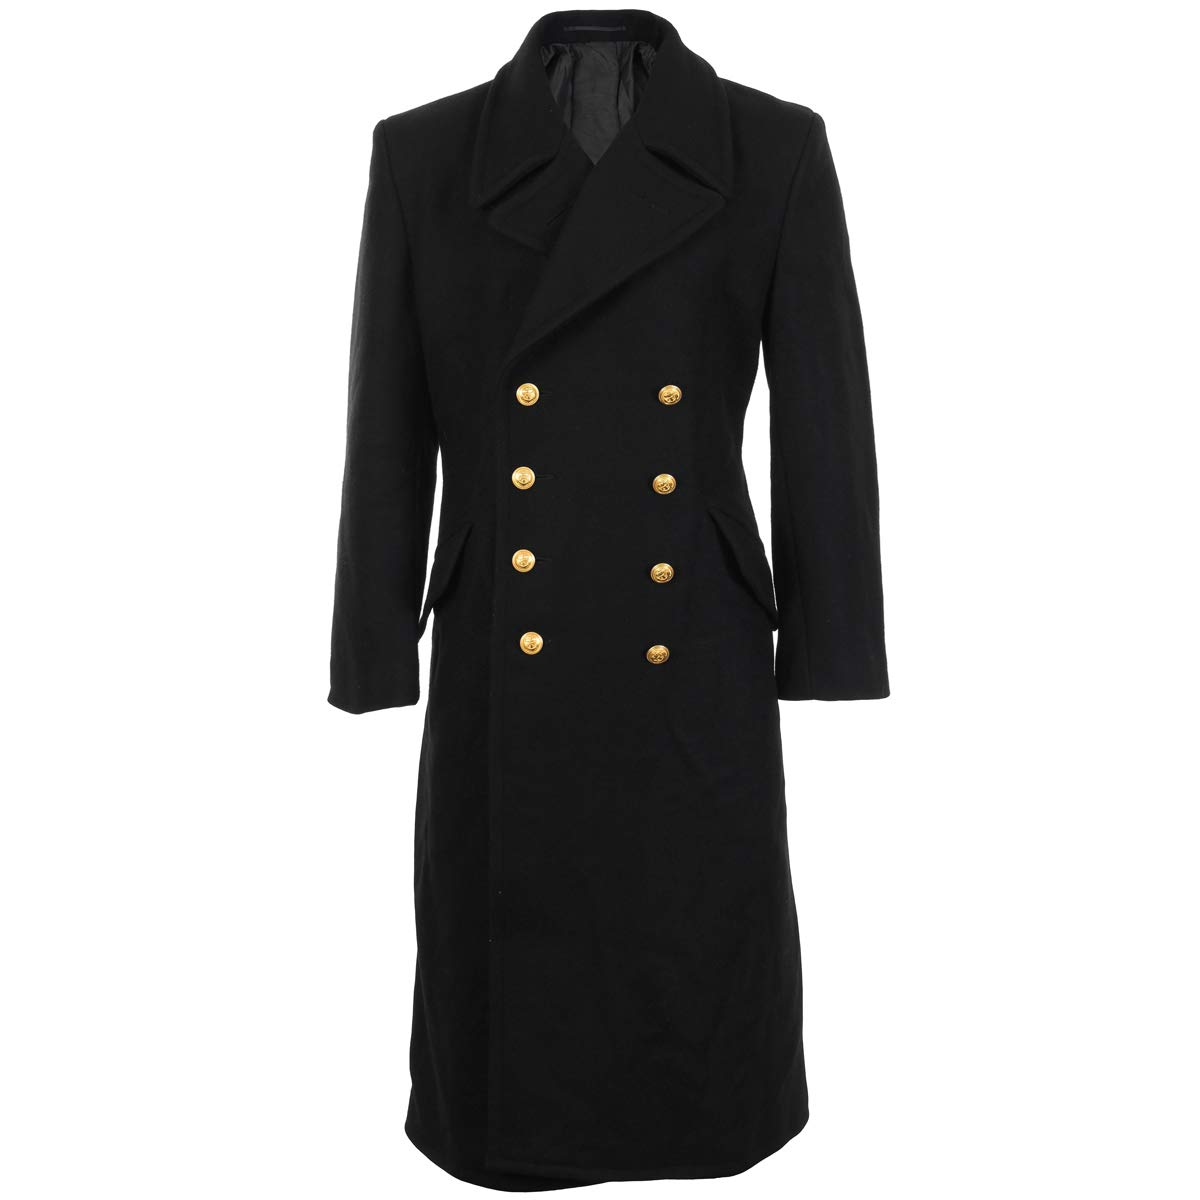 Black Full Length Double Brested Naval Great Coat